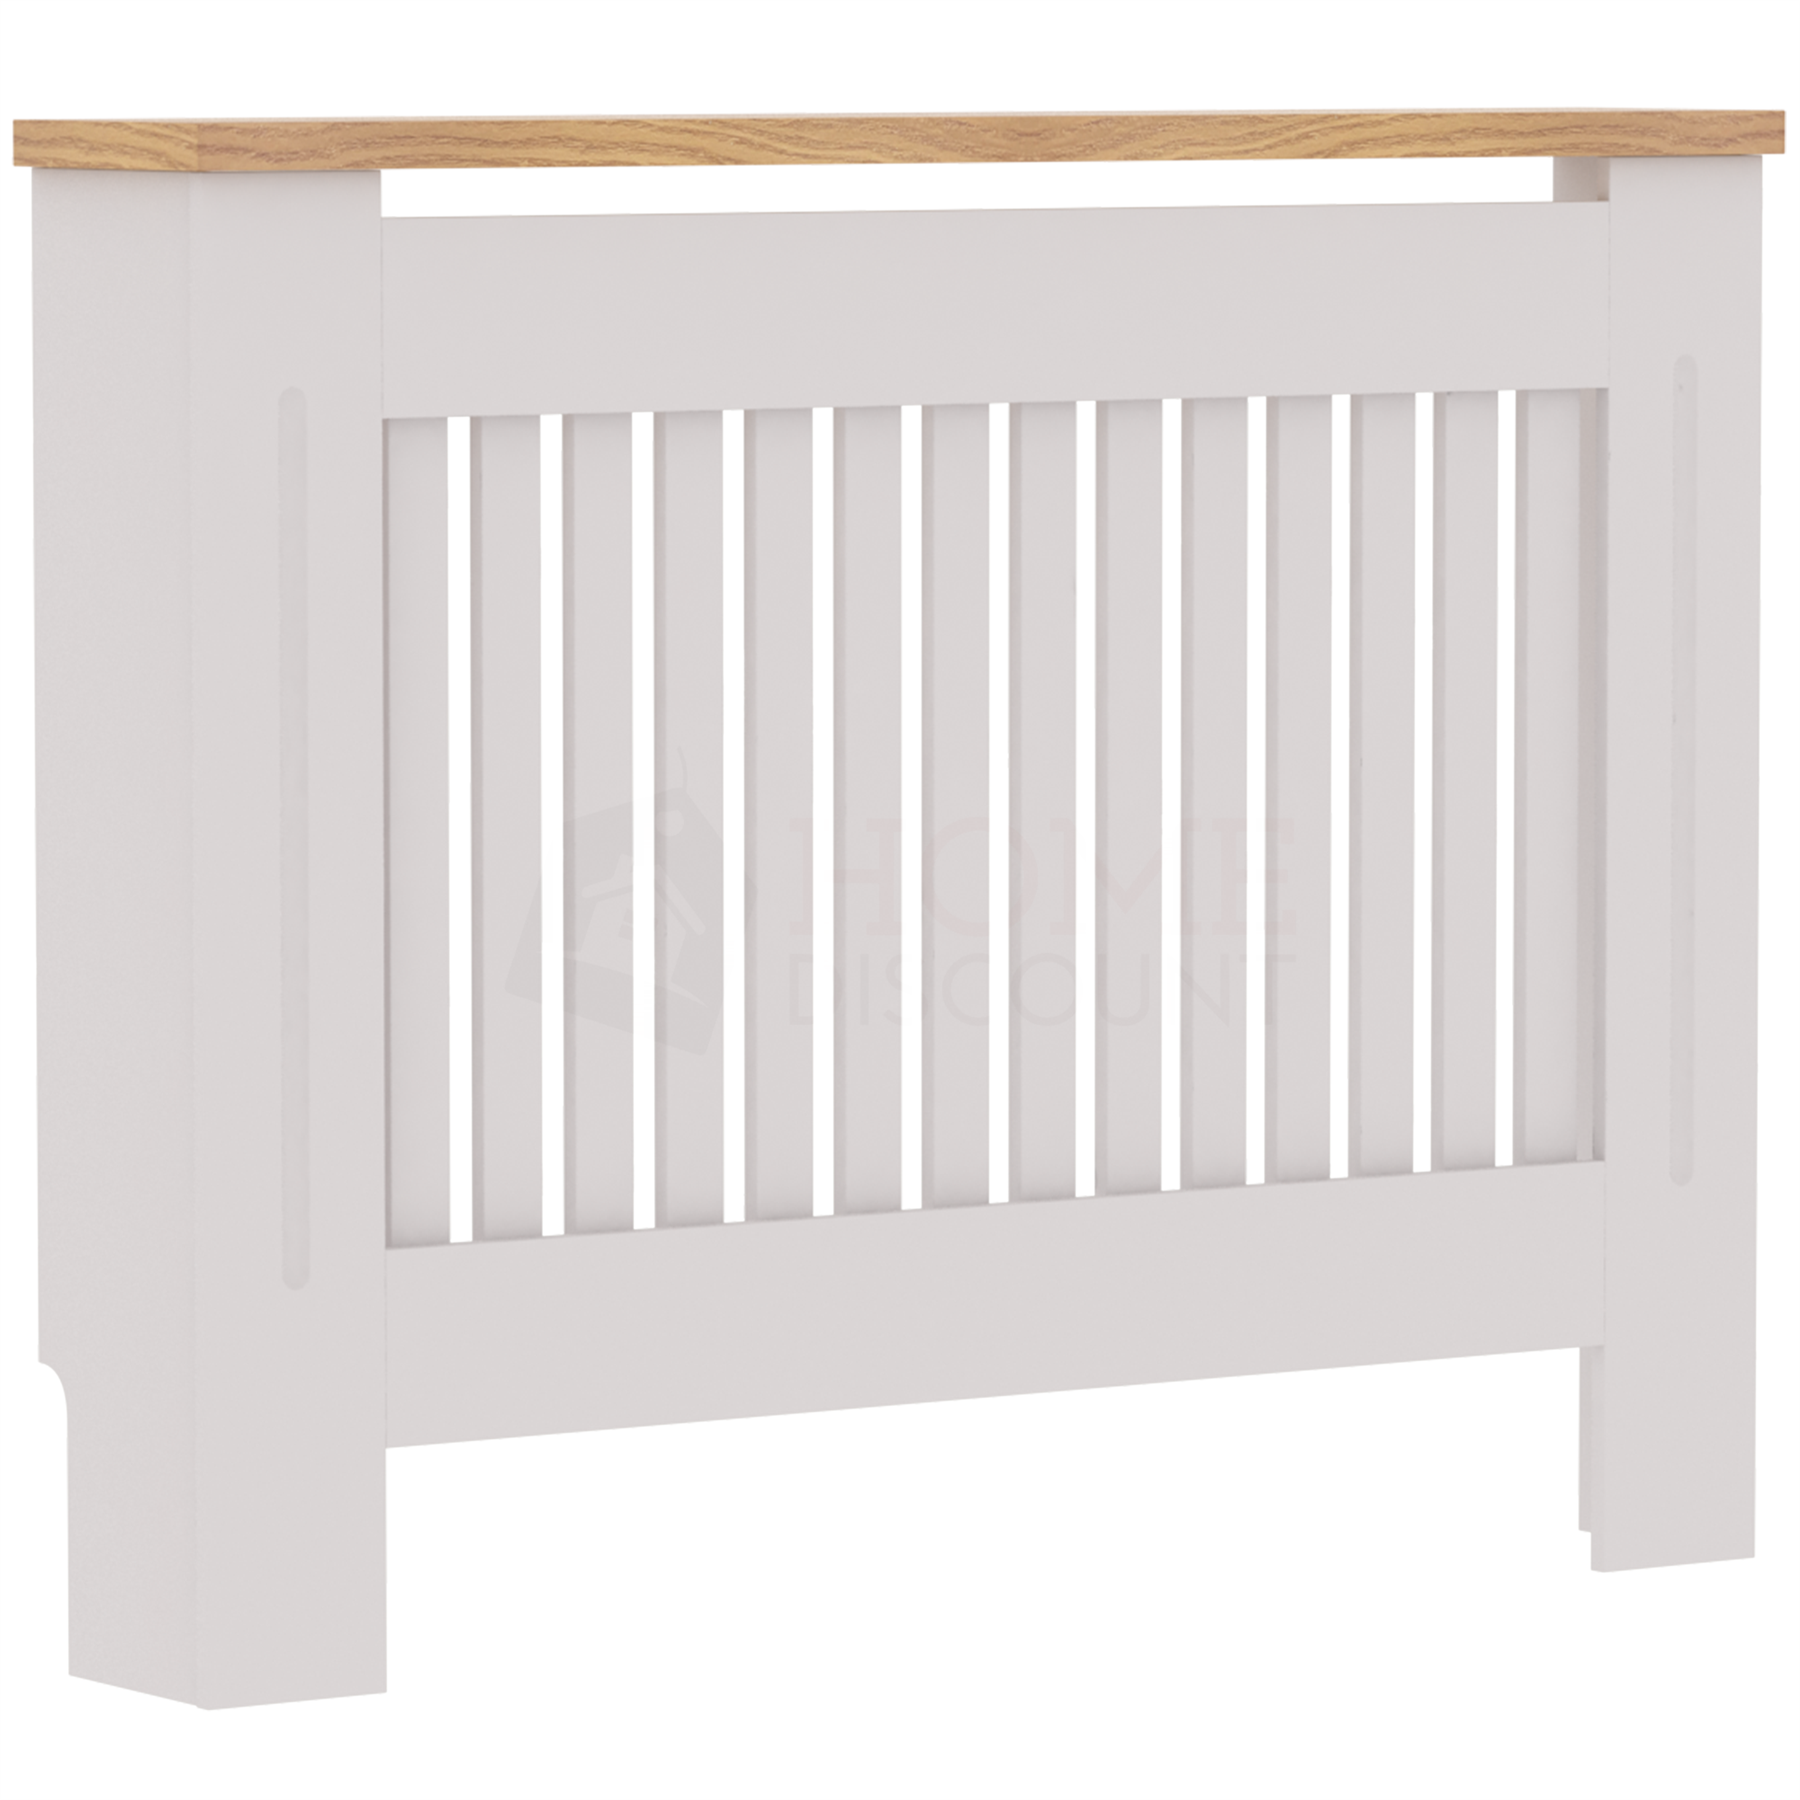 thumbnail 17 - Radiator Cover White Unfinished Modern Traditional Wood Grill Cabinet Furniture